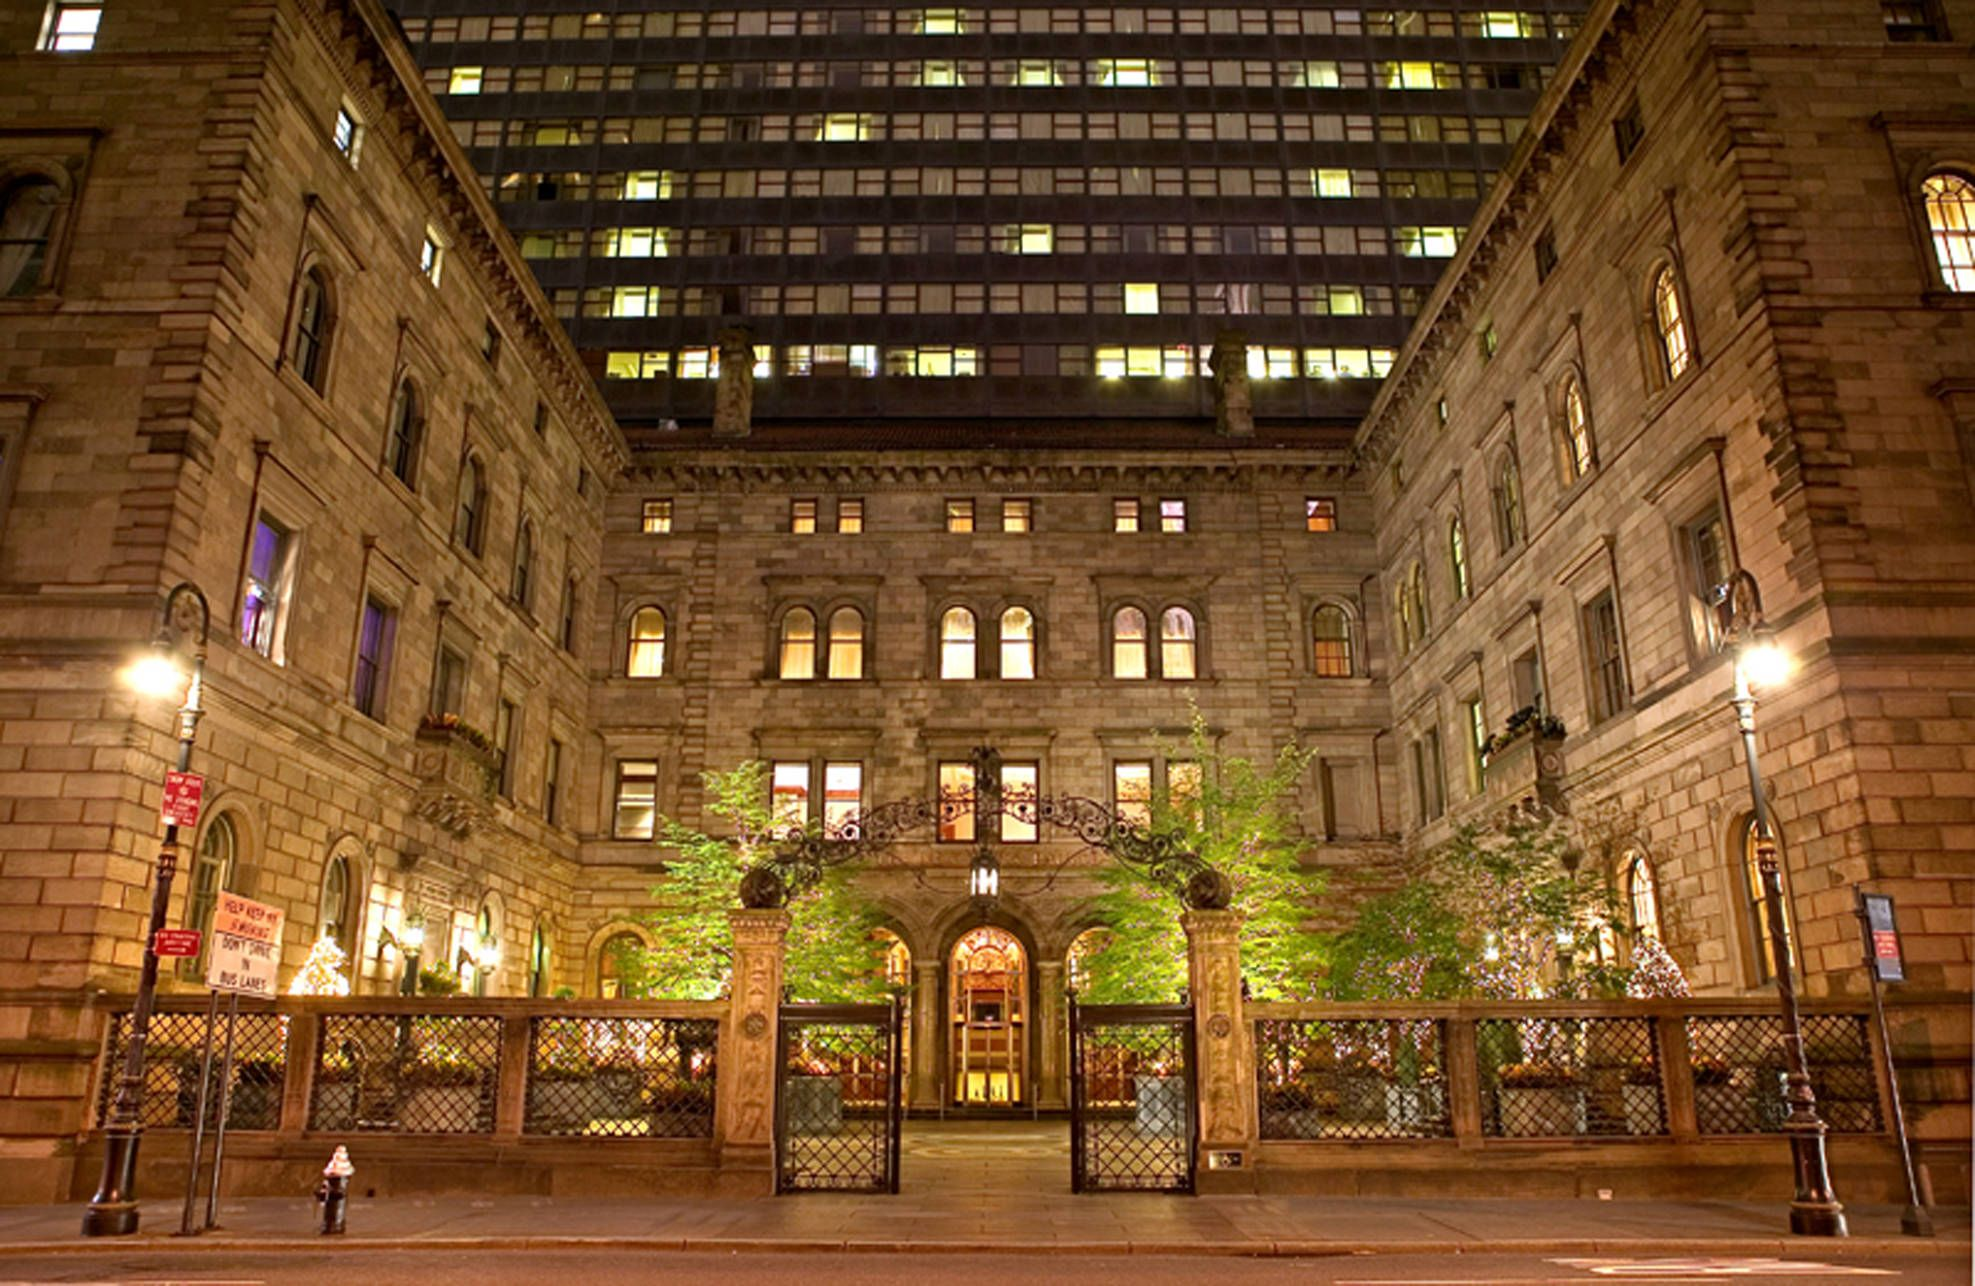 Lotte new york palace is an inimitable nyc luxury hotel offering spacious upscale accommodations on madison avenue in the heart of midtown manhattan